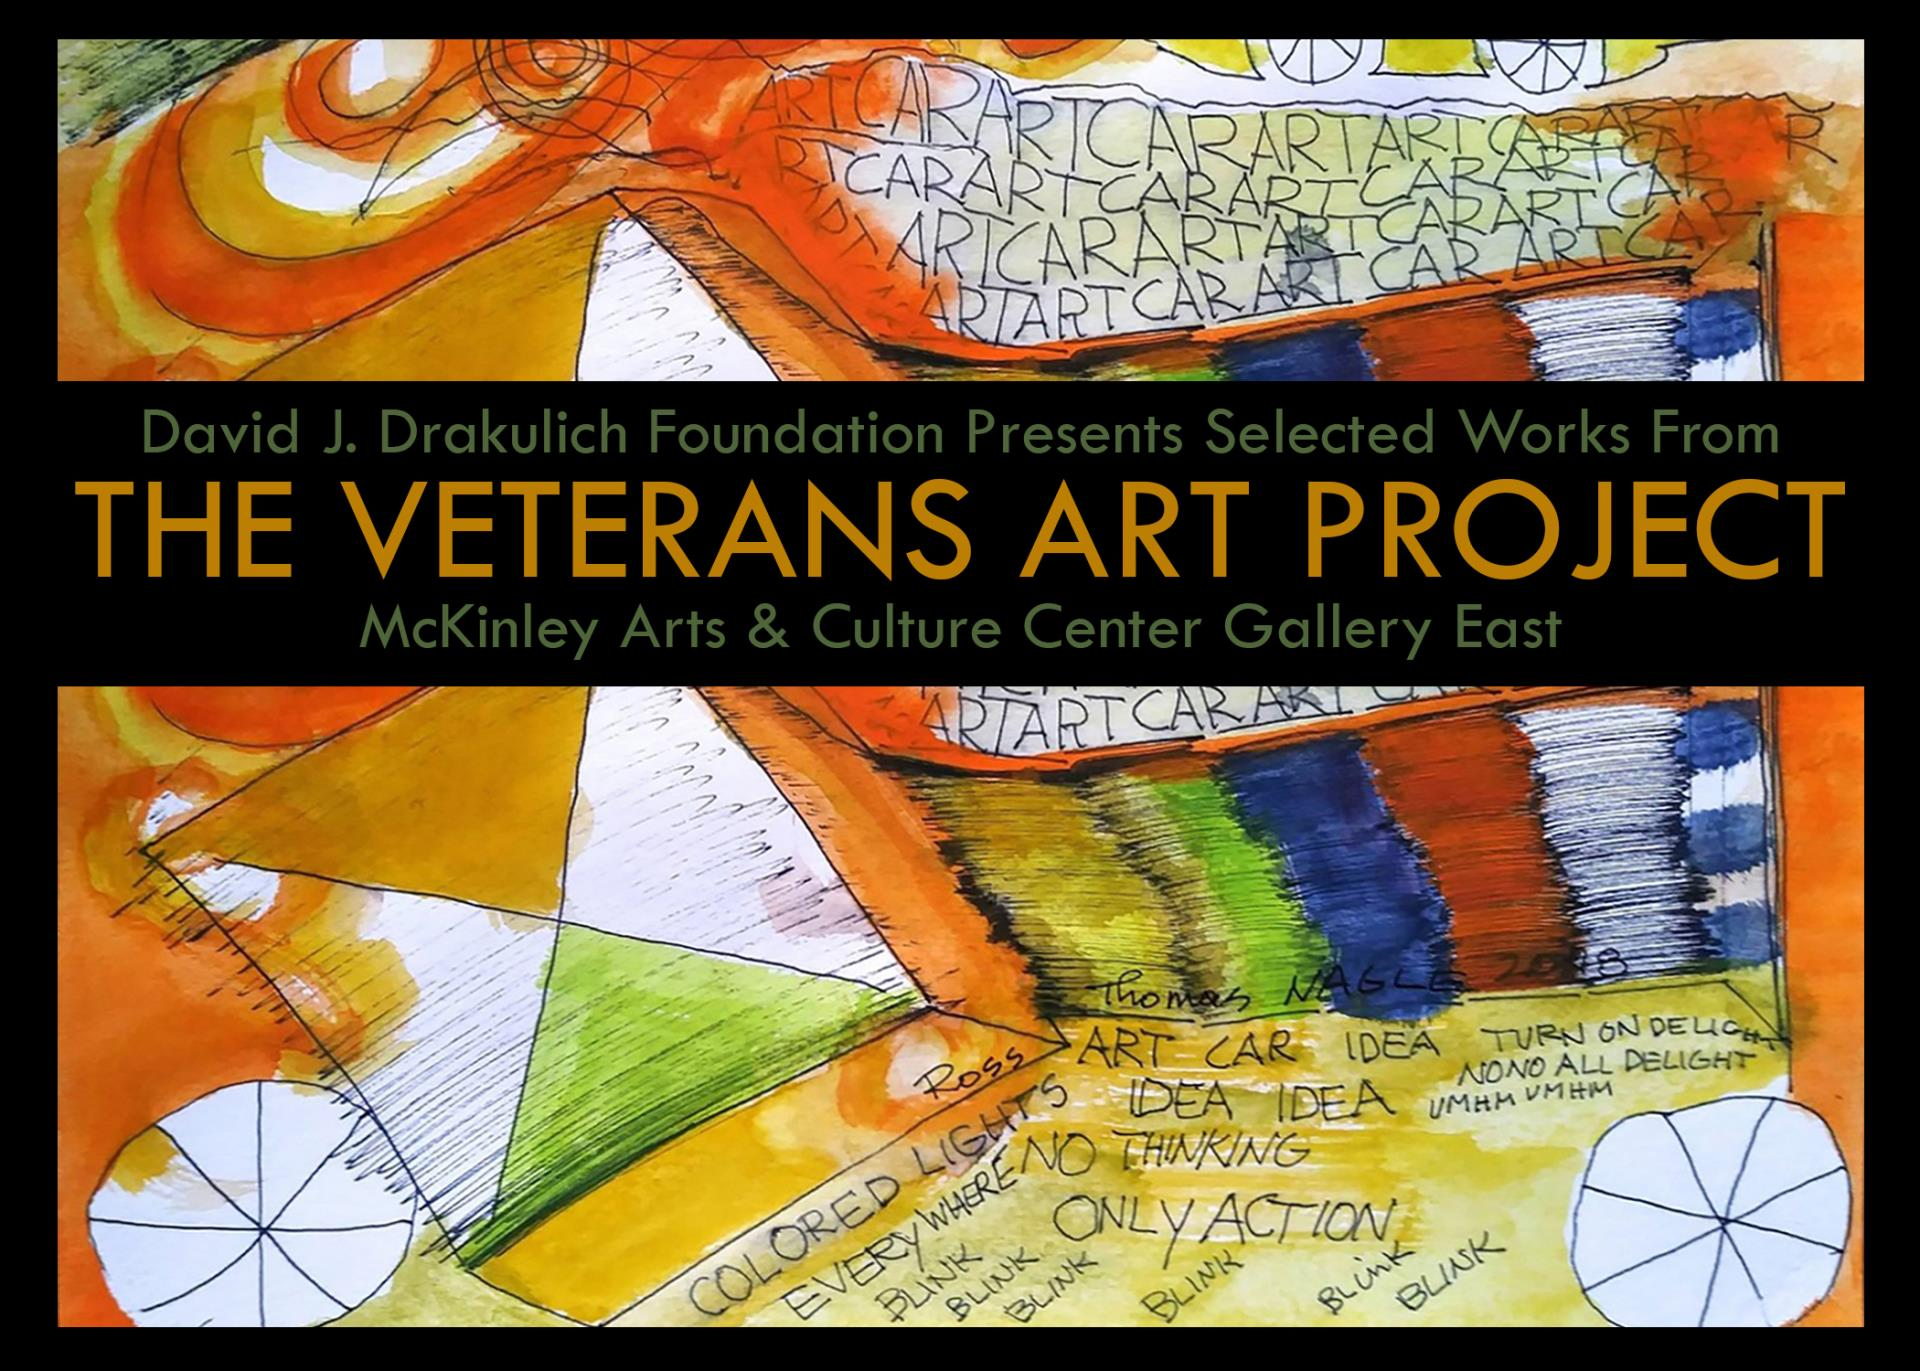 An abstract painting of an art car in predominantly oranges.  The David J. Drakulich Foundation Presents Selected works from The Veterans Art Project.  January 7 to February 15.  Reception January 17 from 5 to 7. McKinley Center Gallery East.